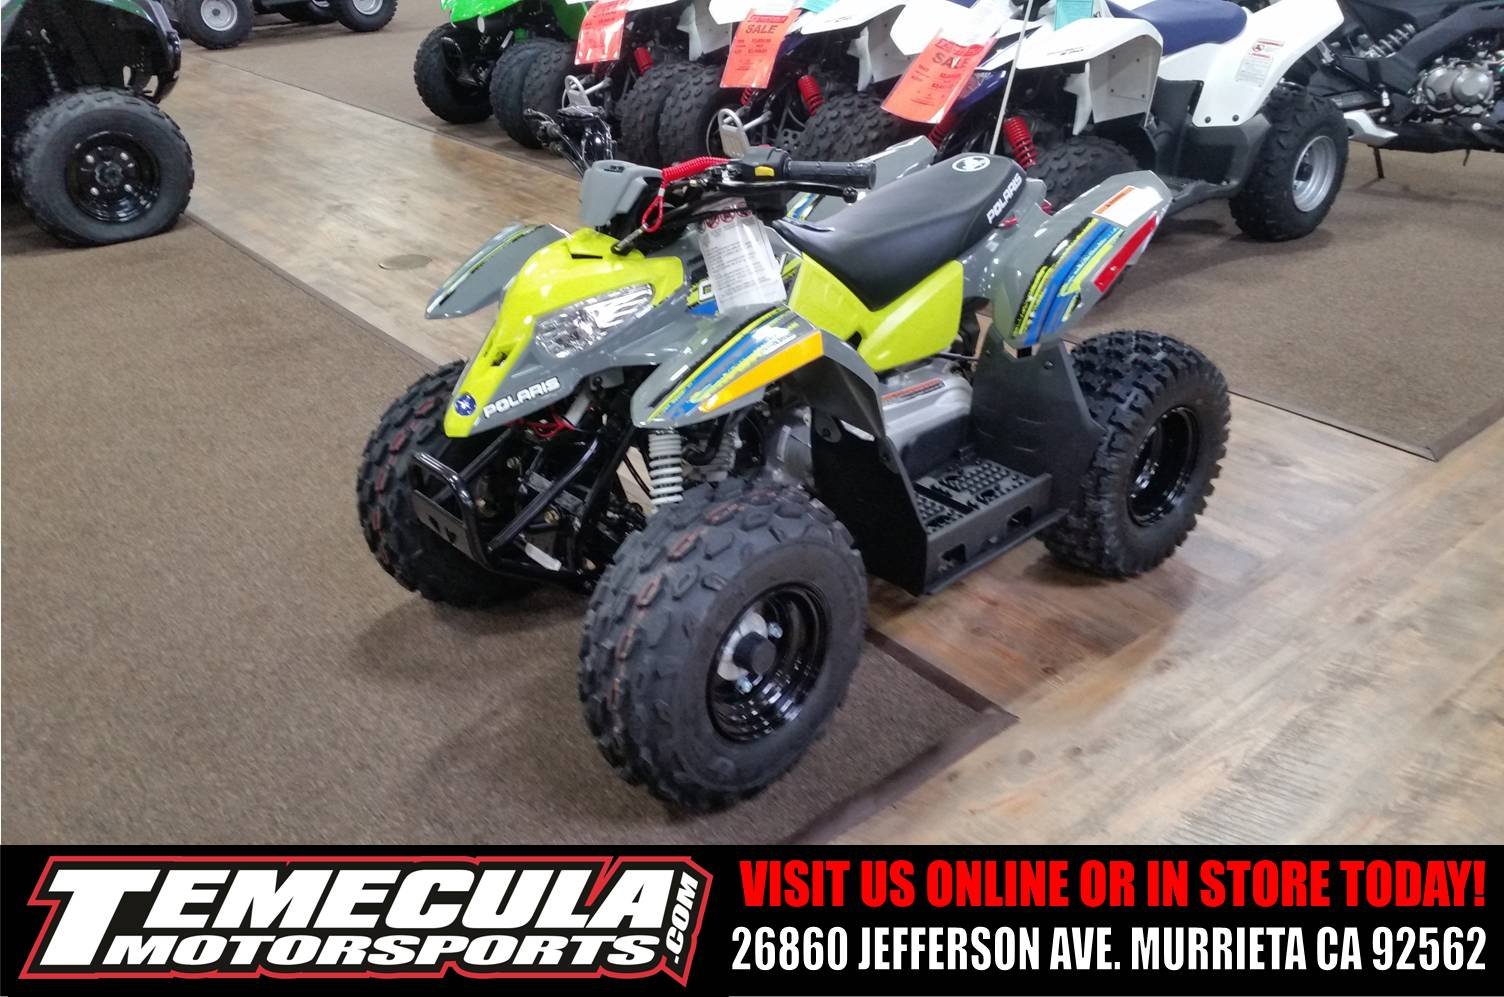 2018 Polaris Outlaw 50 in Murrieta, California